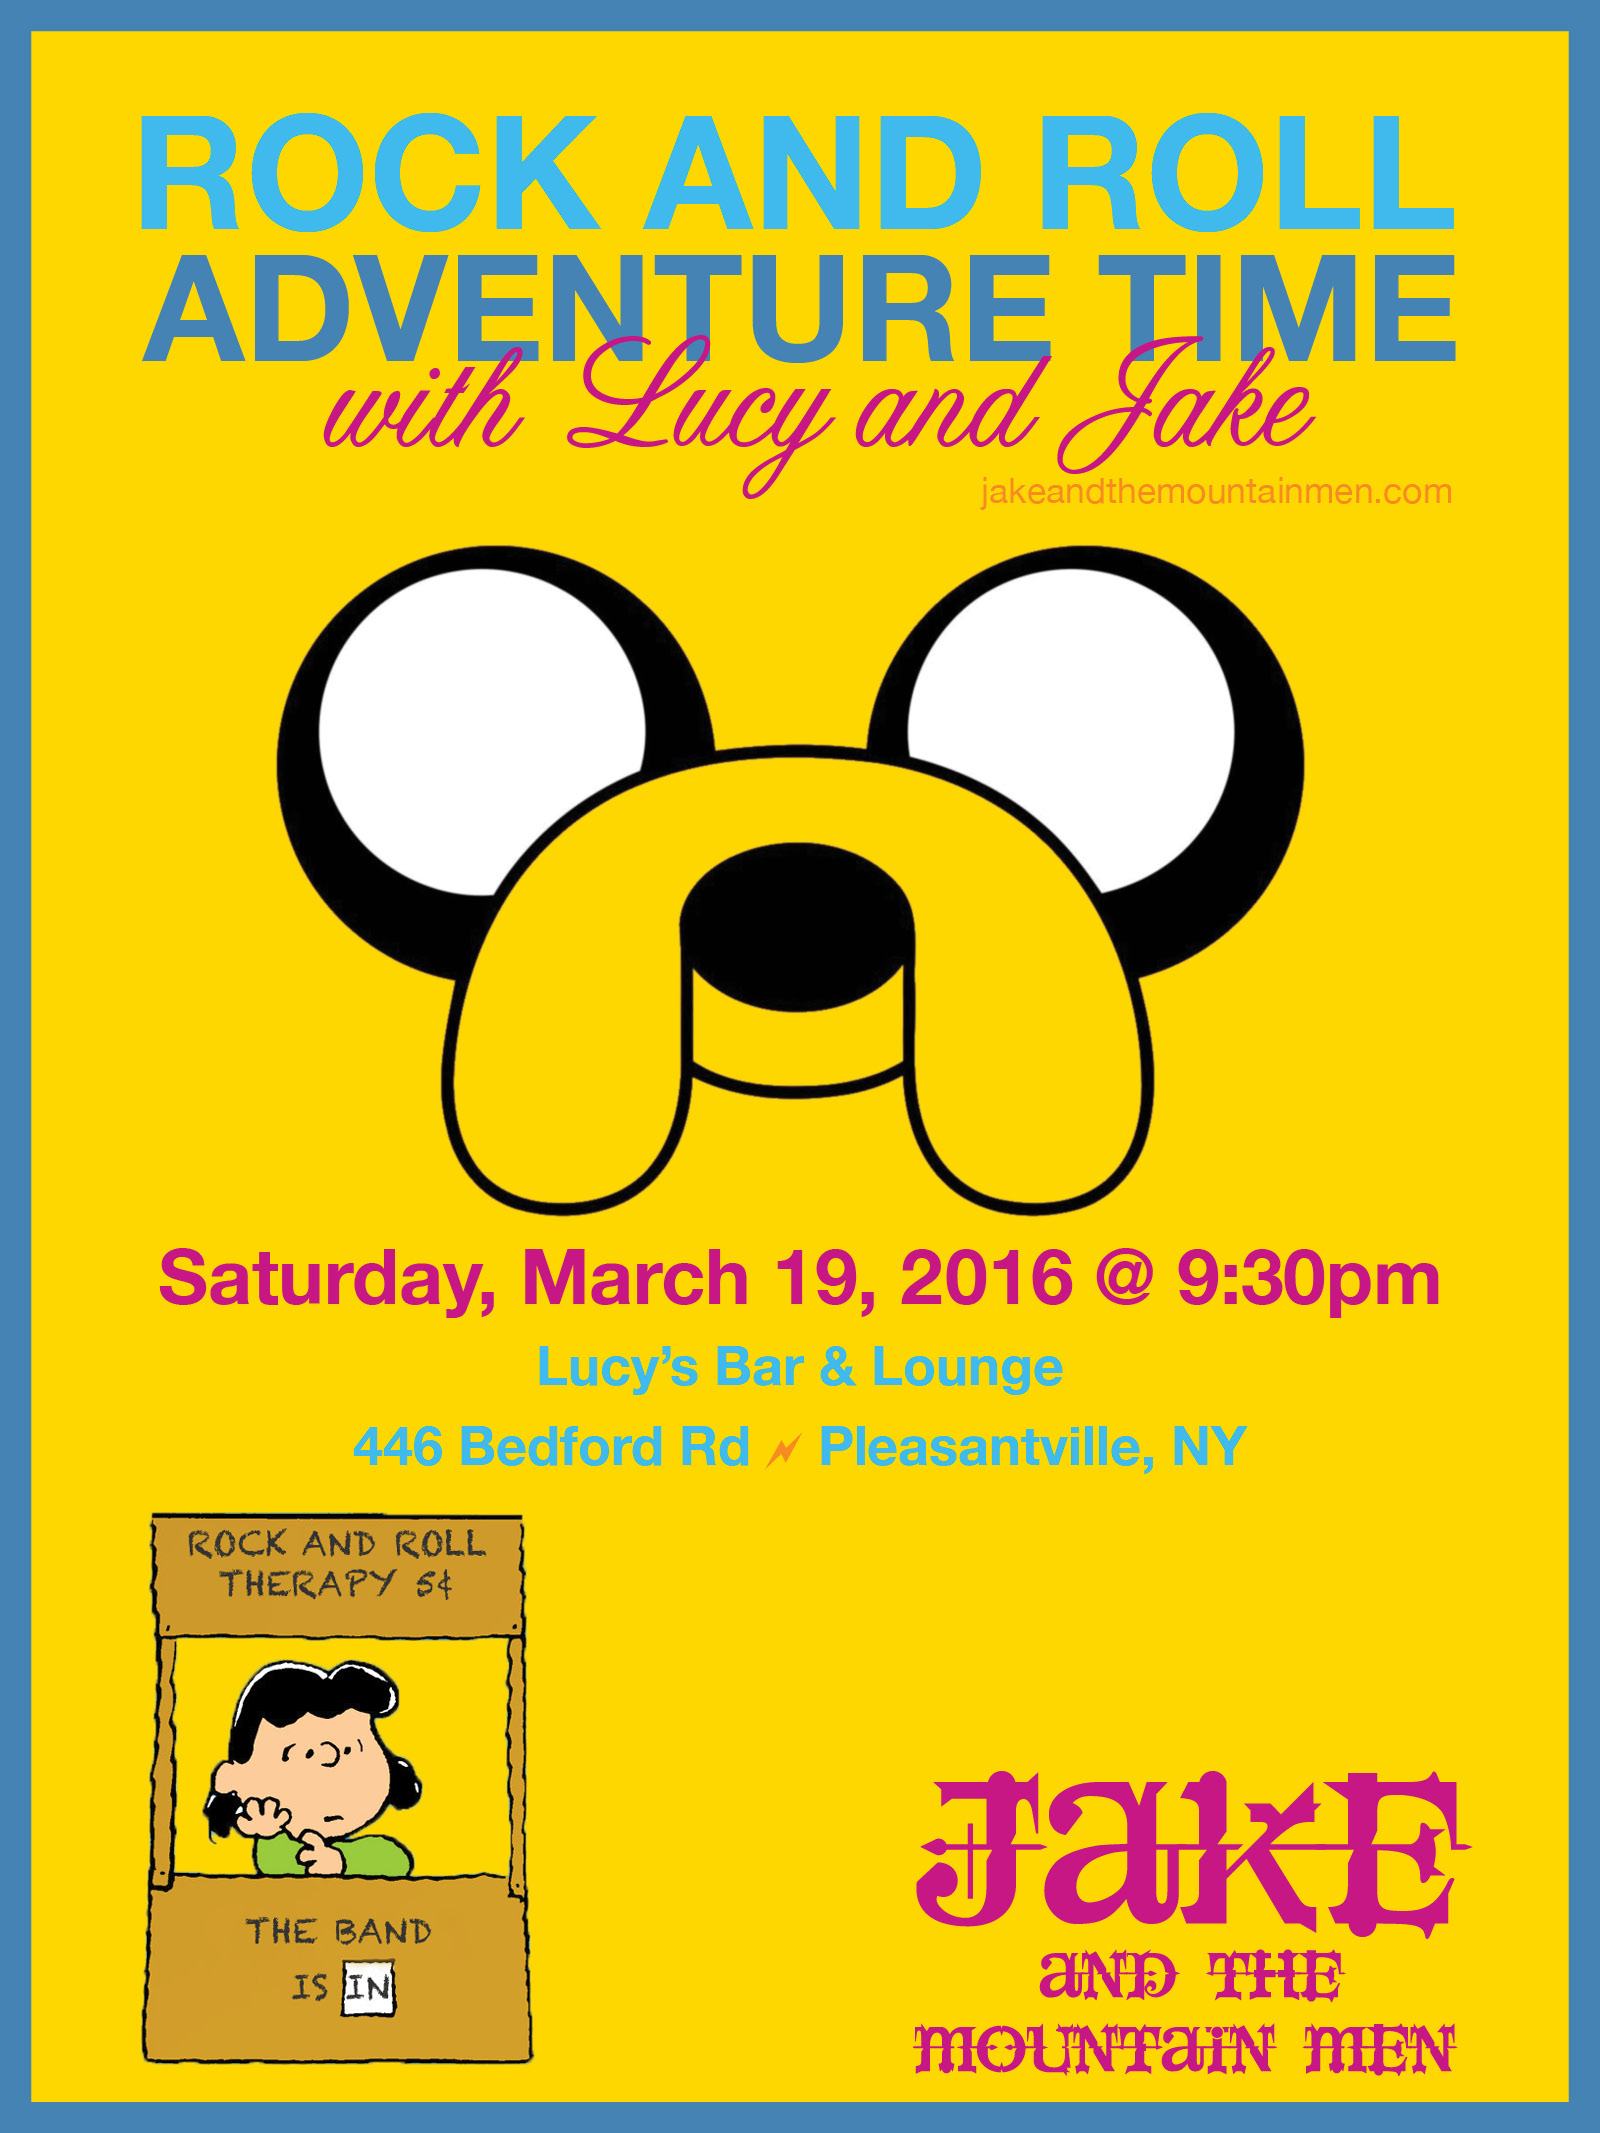 Rock and Roll Adventure Time with Lucy and Jake